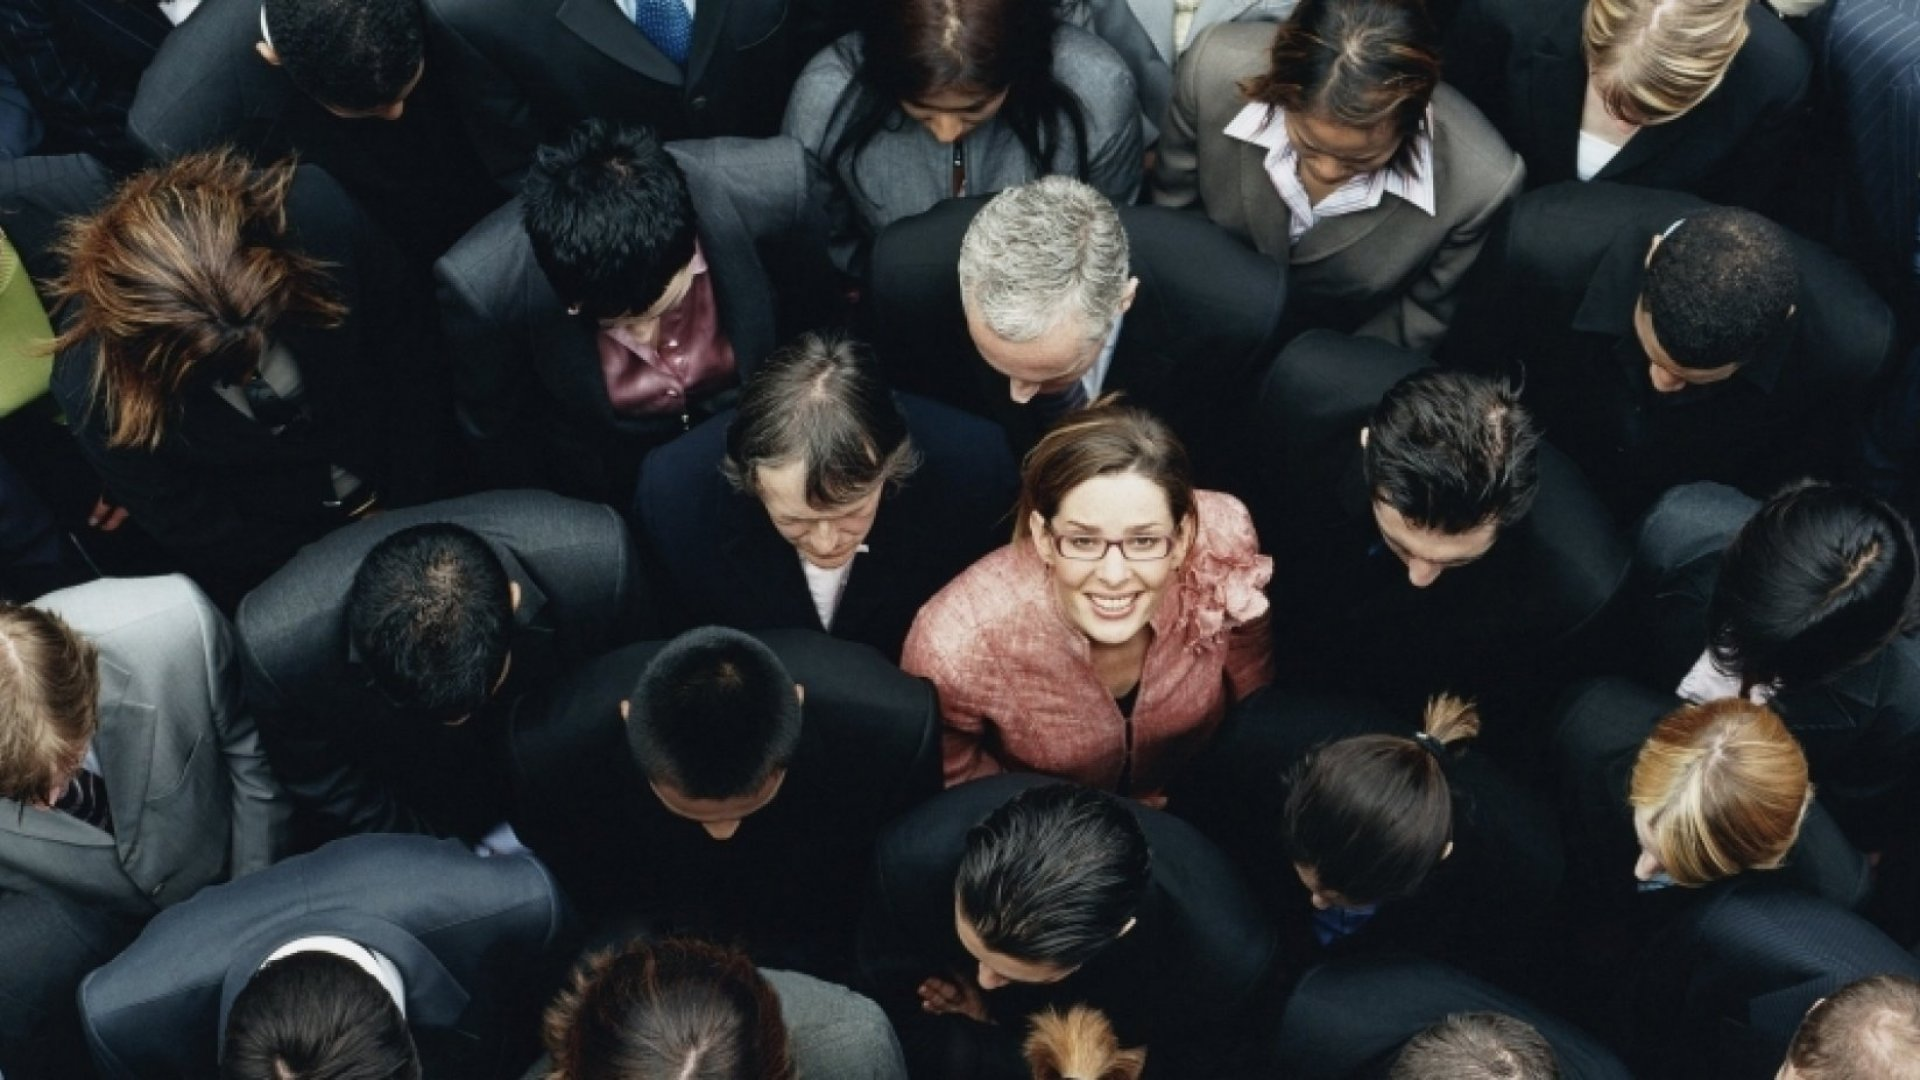 15 Compelling Questions That Will Improve Your Leadership Skills